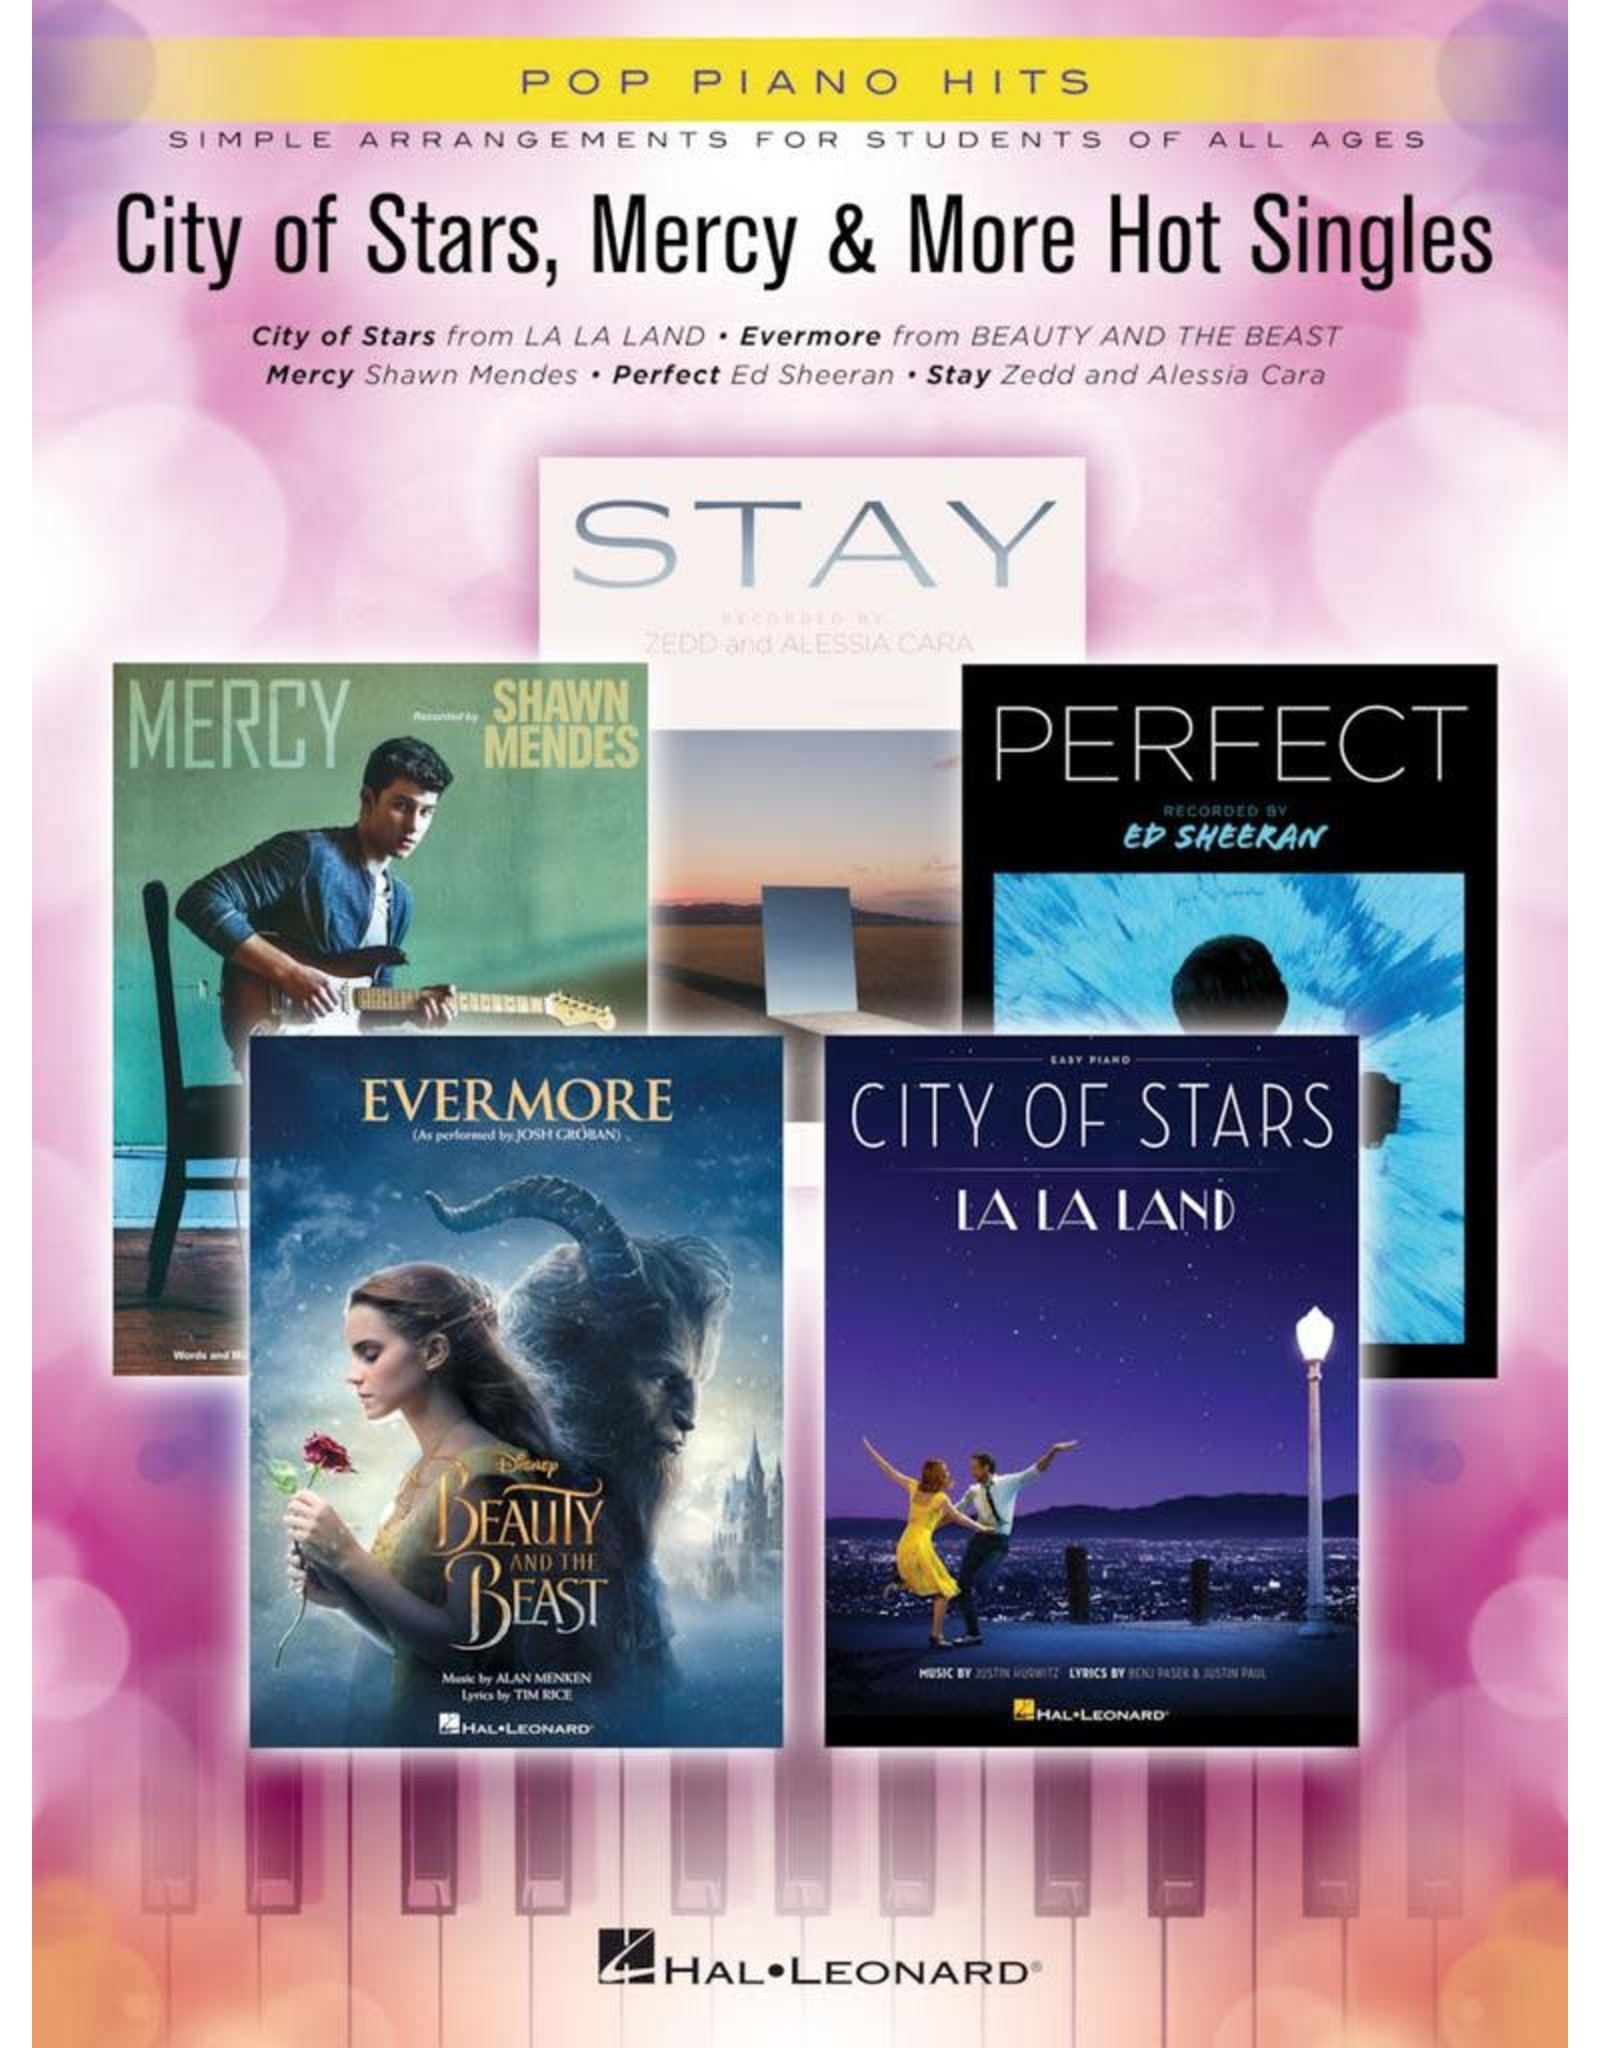 Hal Leonard City of Stars, Mercy, and More Hot Singles Easy Piano